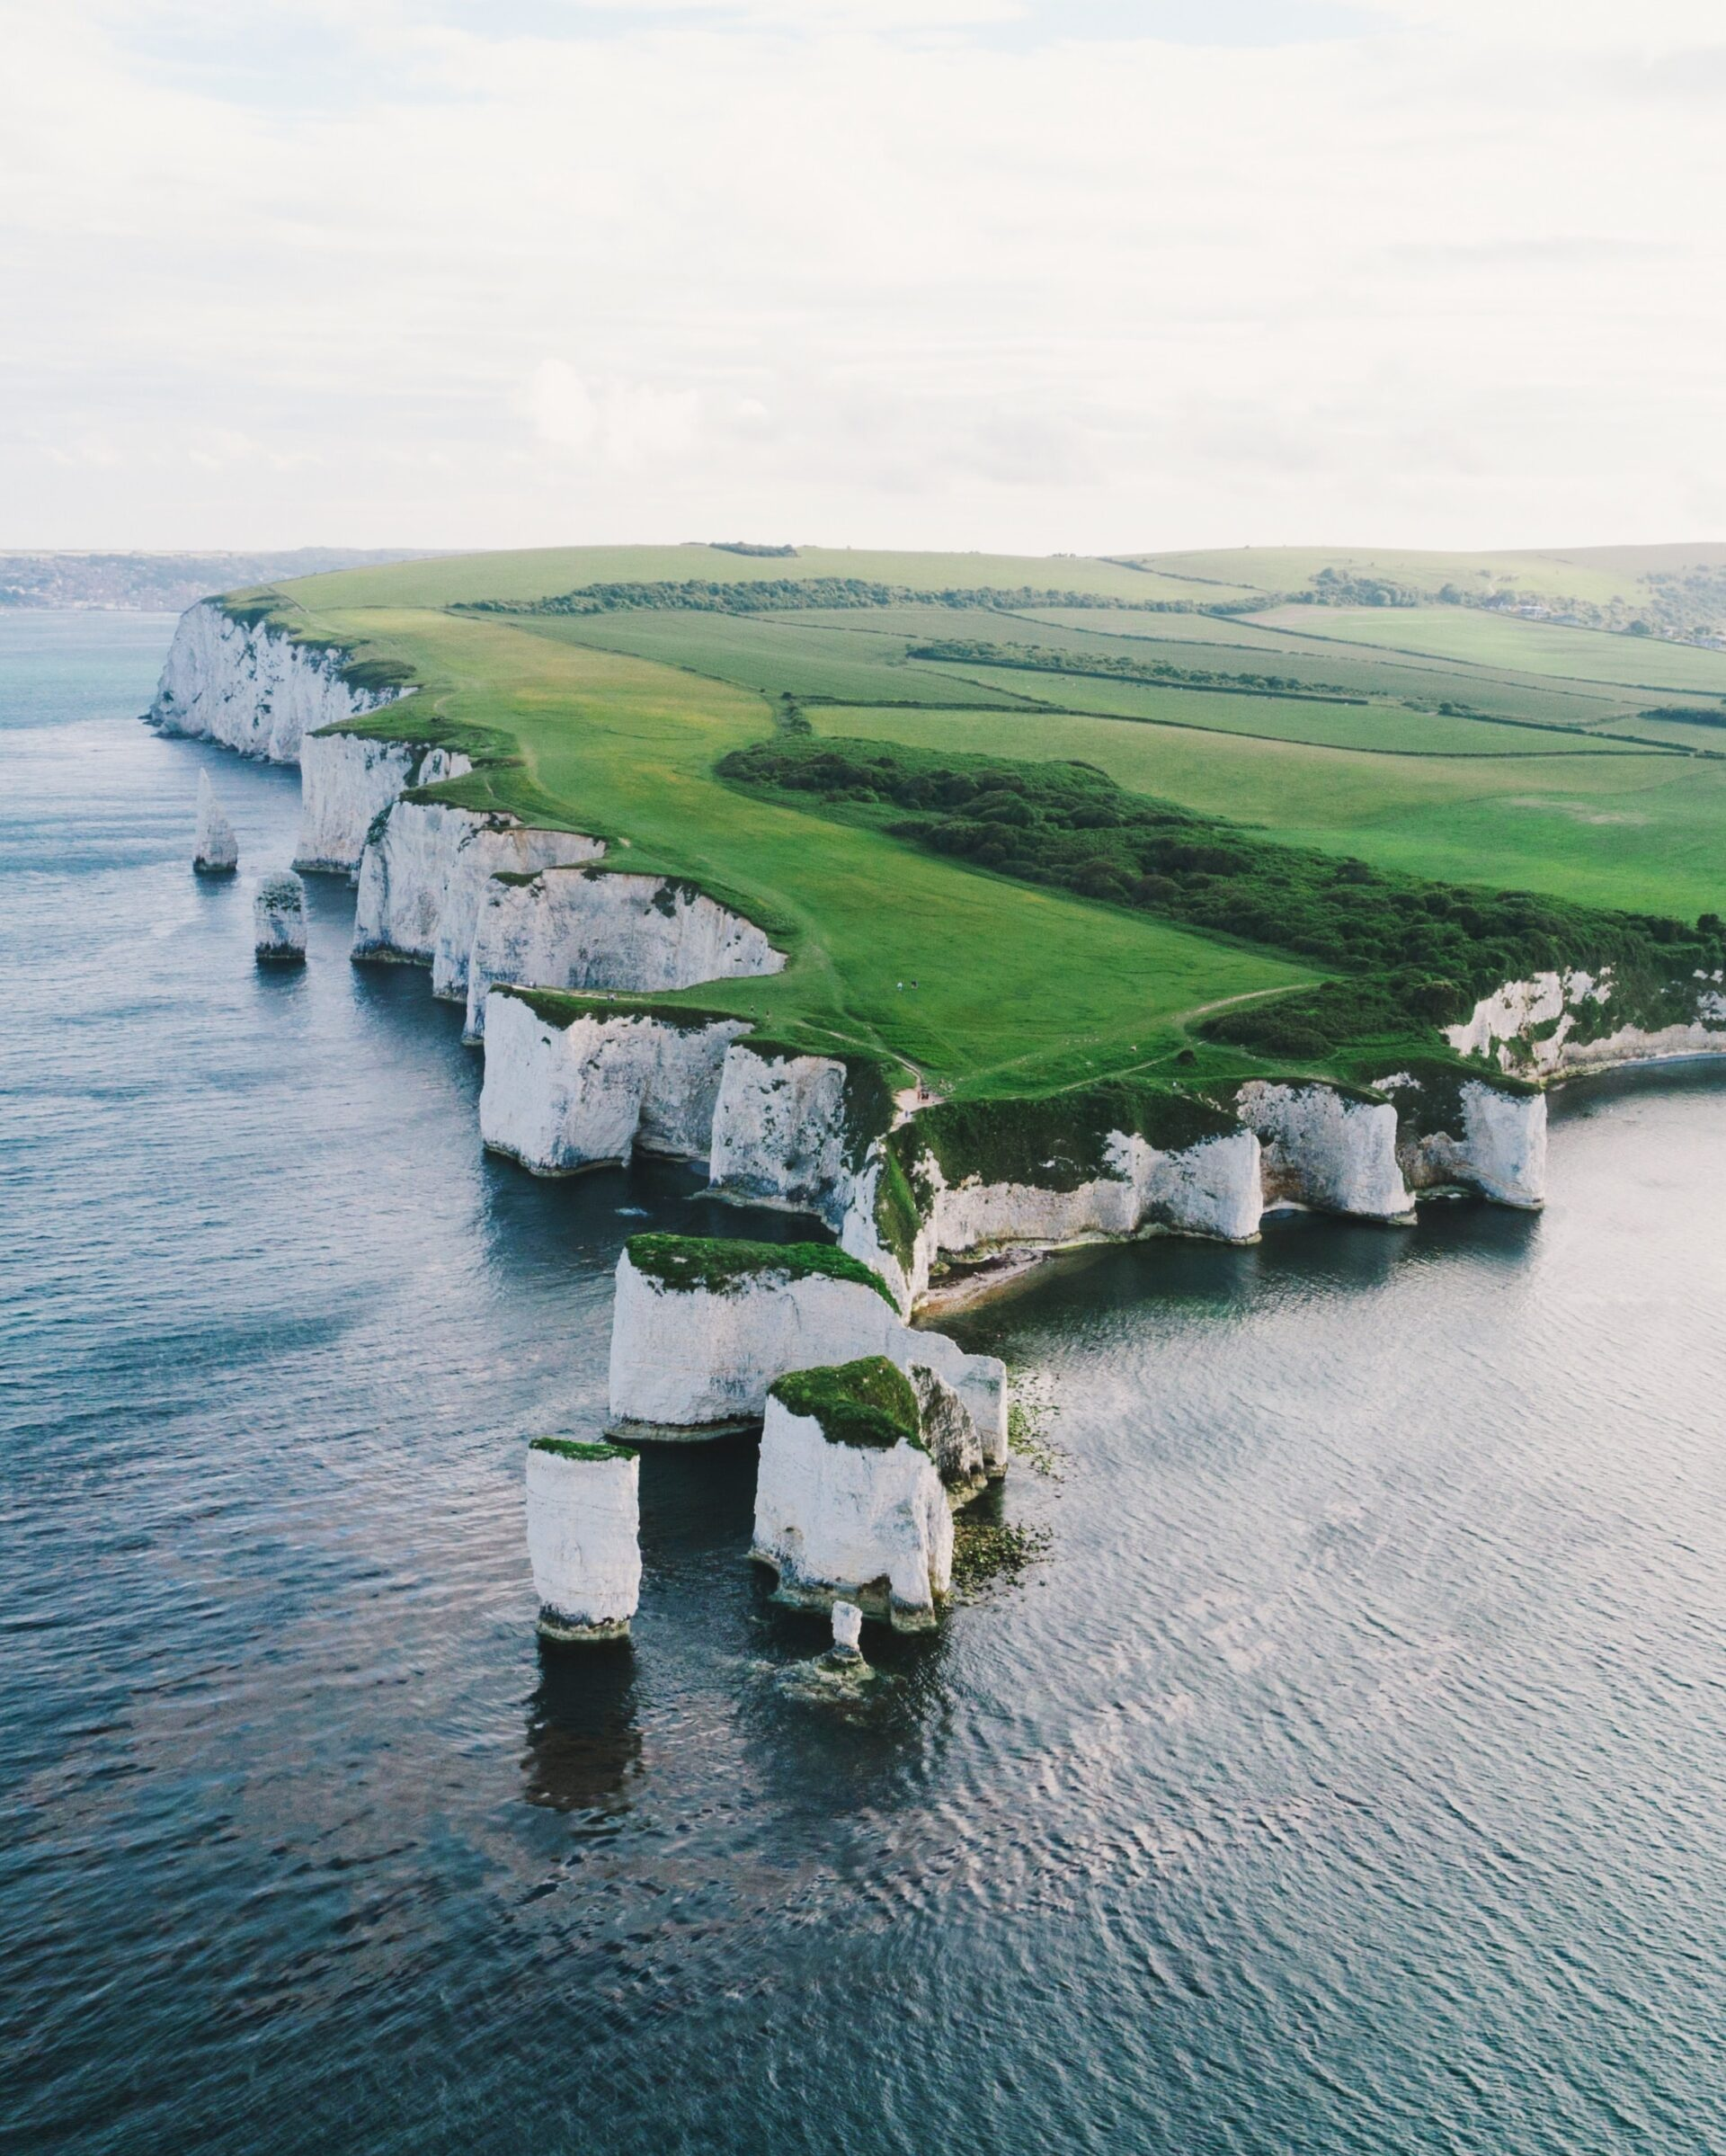 Cliffs at sea as seen from a drone